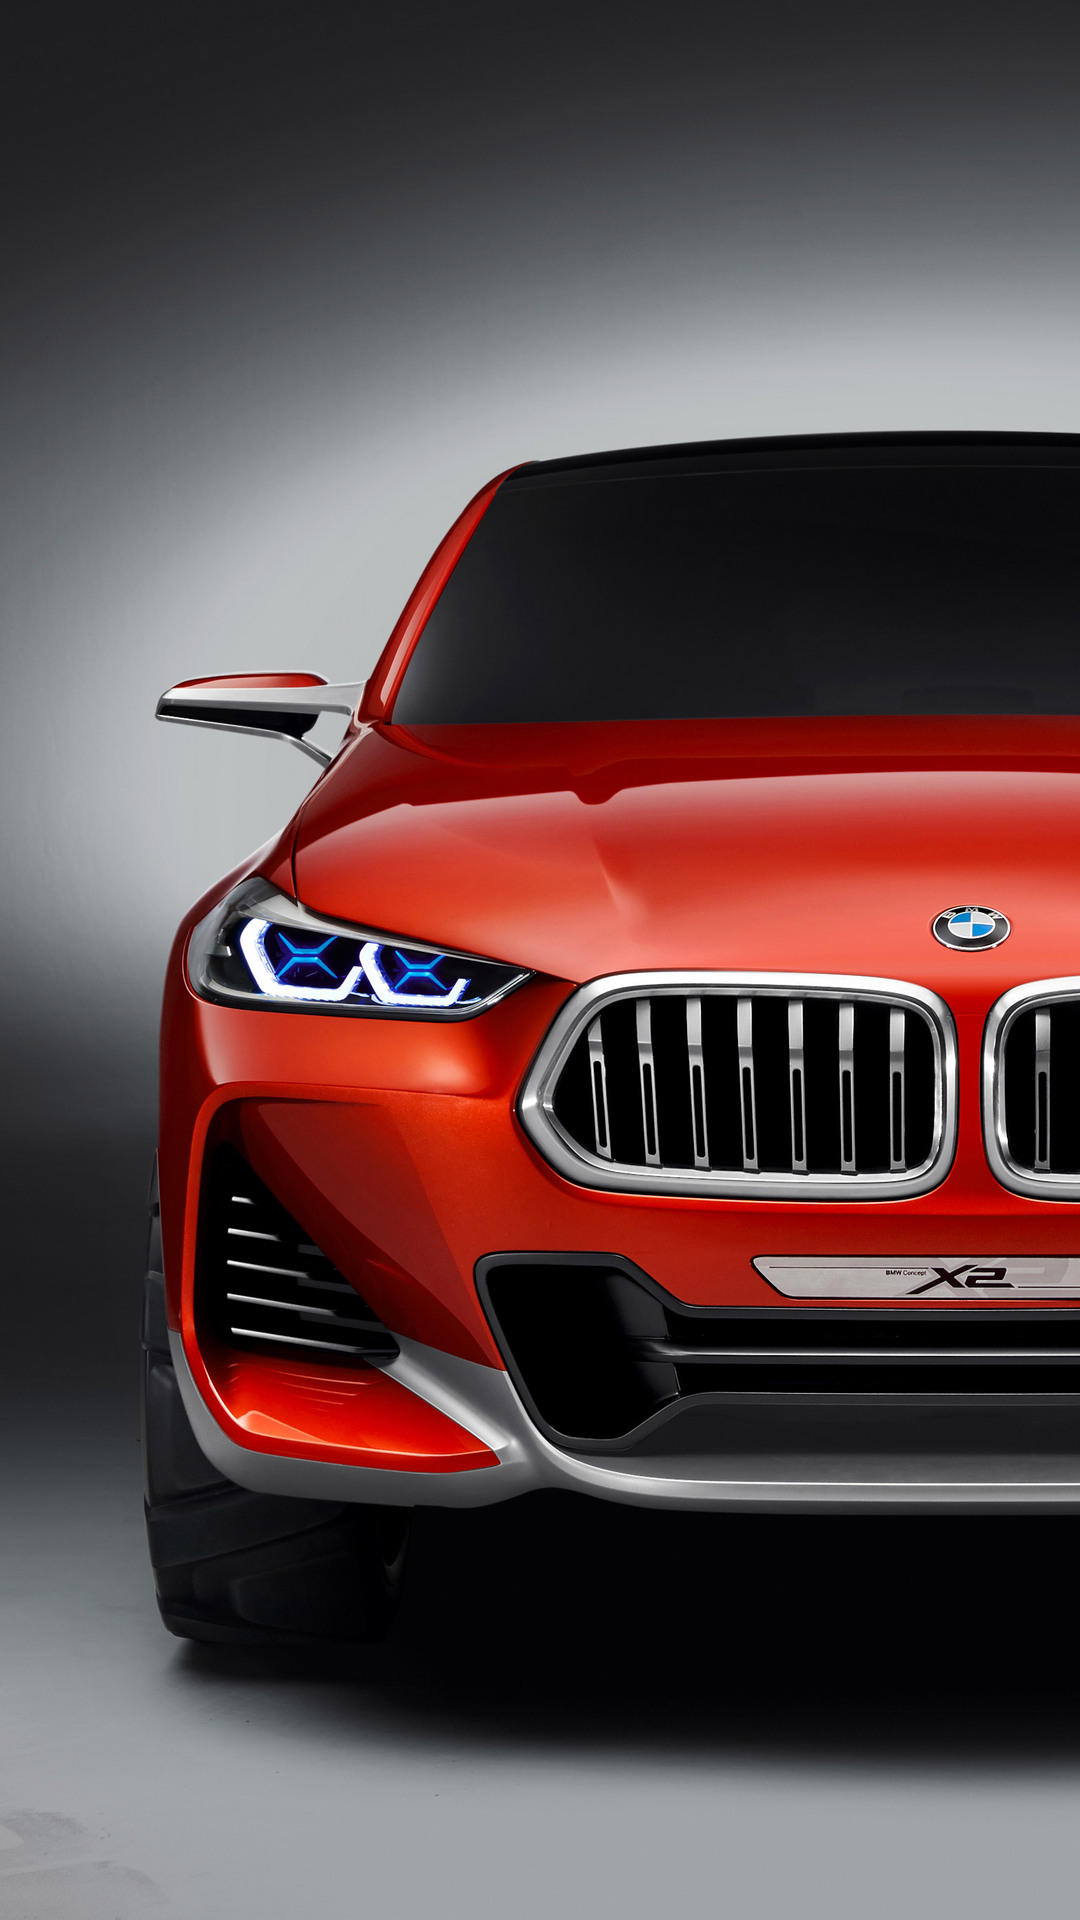 Image [ 5 of 50 ] - 2018 Bmw X2 Concept Wallpaper Hd Car Wallpapers ...